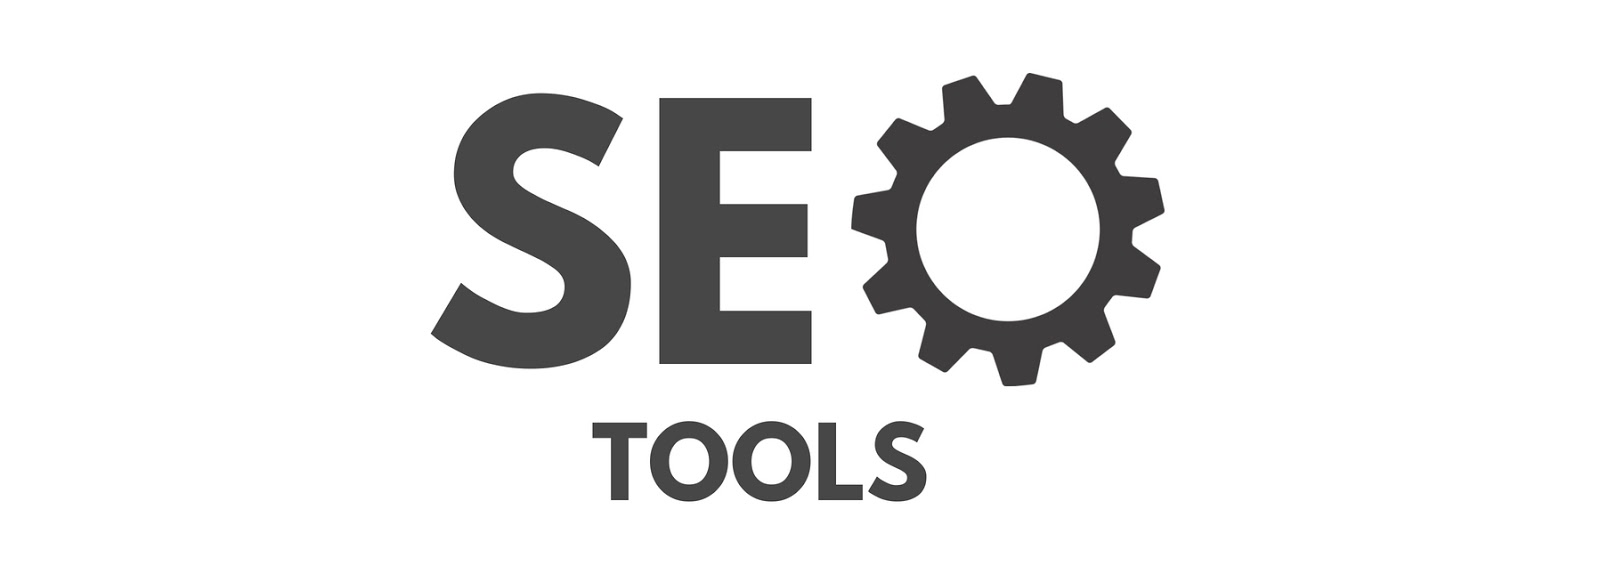 12 Free Effective Seo Tools For Beginners 2018